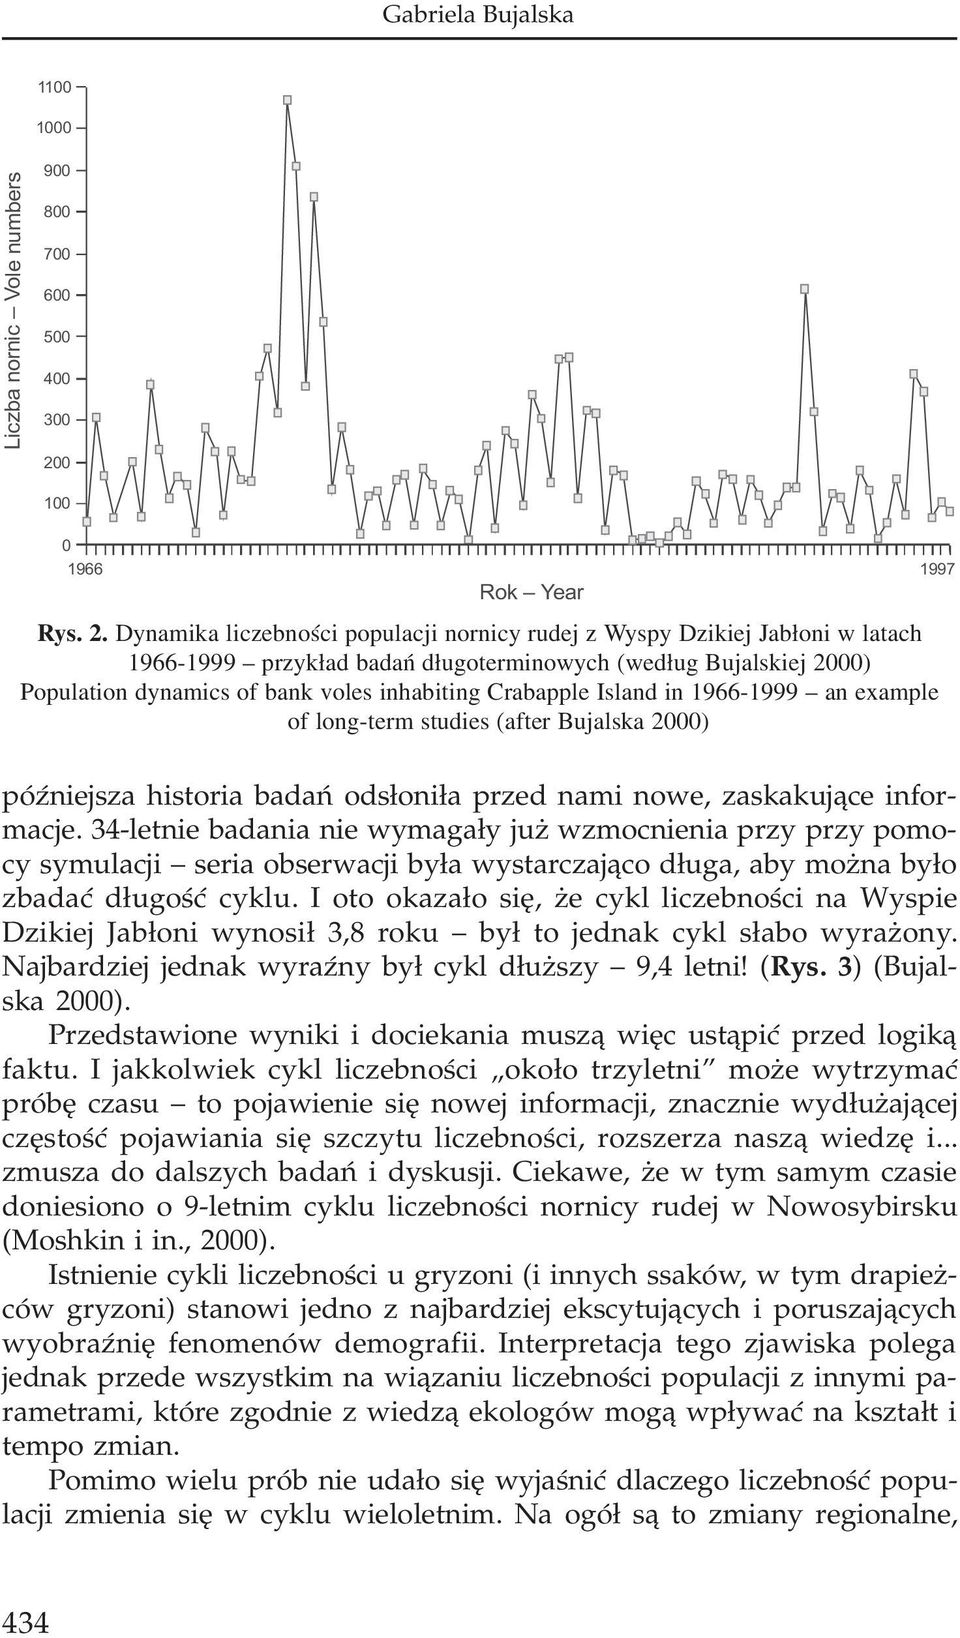 Dynamika liczebnoœci populacji nornicy rudej z Wyspy Dzikiej Jab³oni w latach 1966-1999 przyk³ad badañ d³ugoterminowych (wed³ug Bujalskiej 2000) Population dynamics of bank voles inhabiting Crabapple